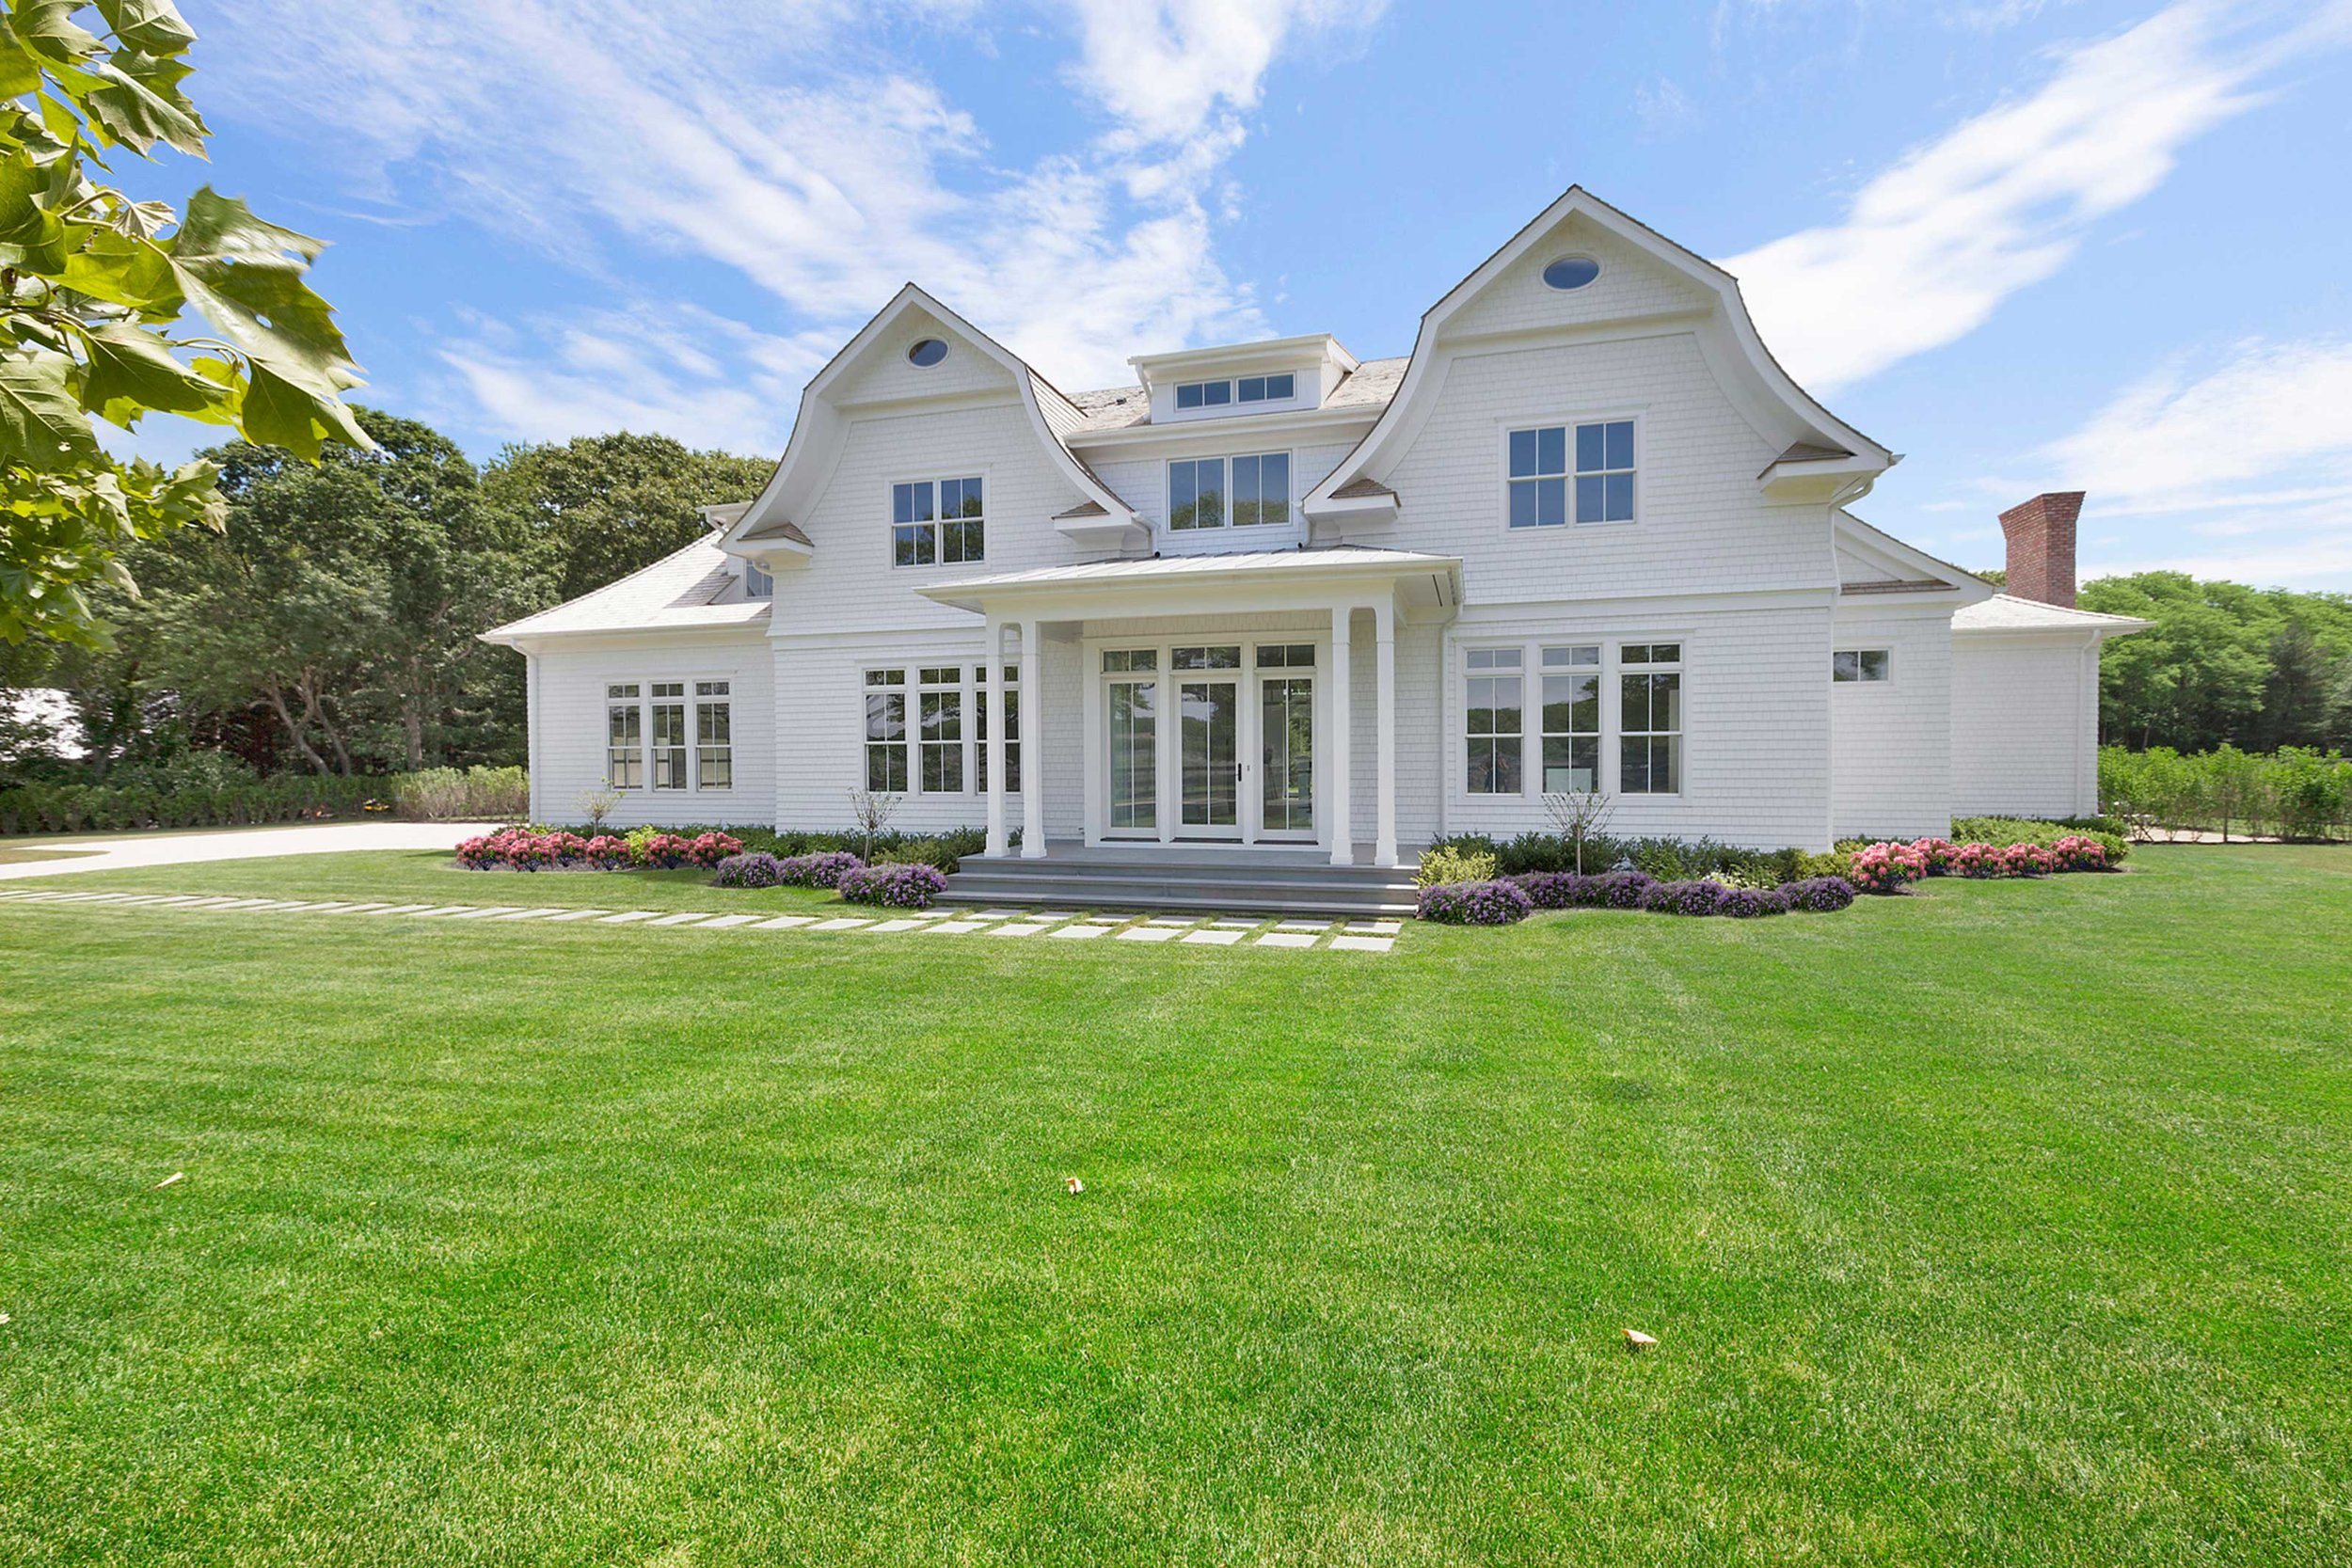 EDGE OF WOODS - IN CONTRACT